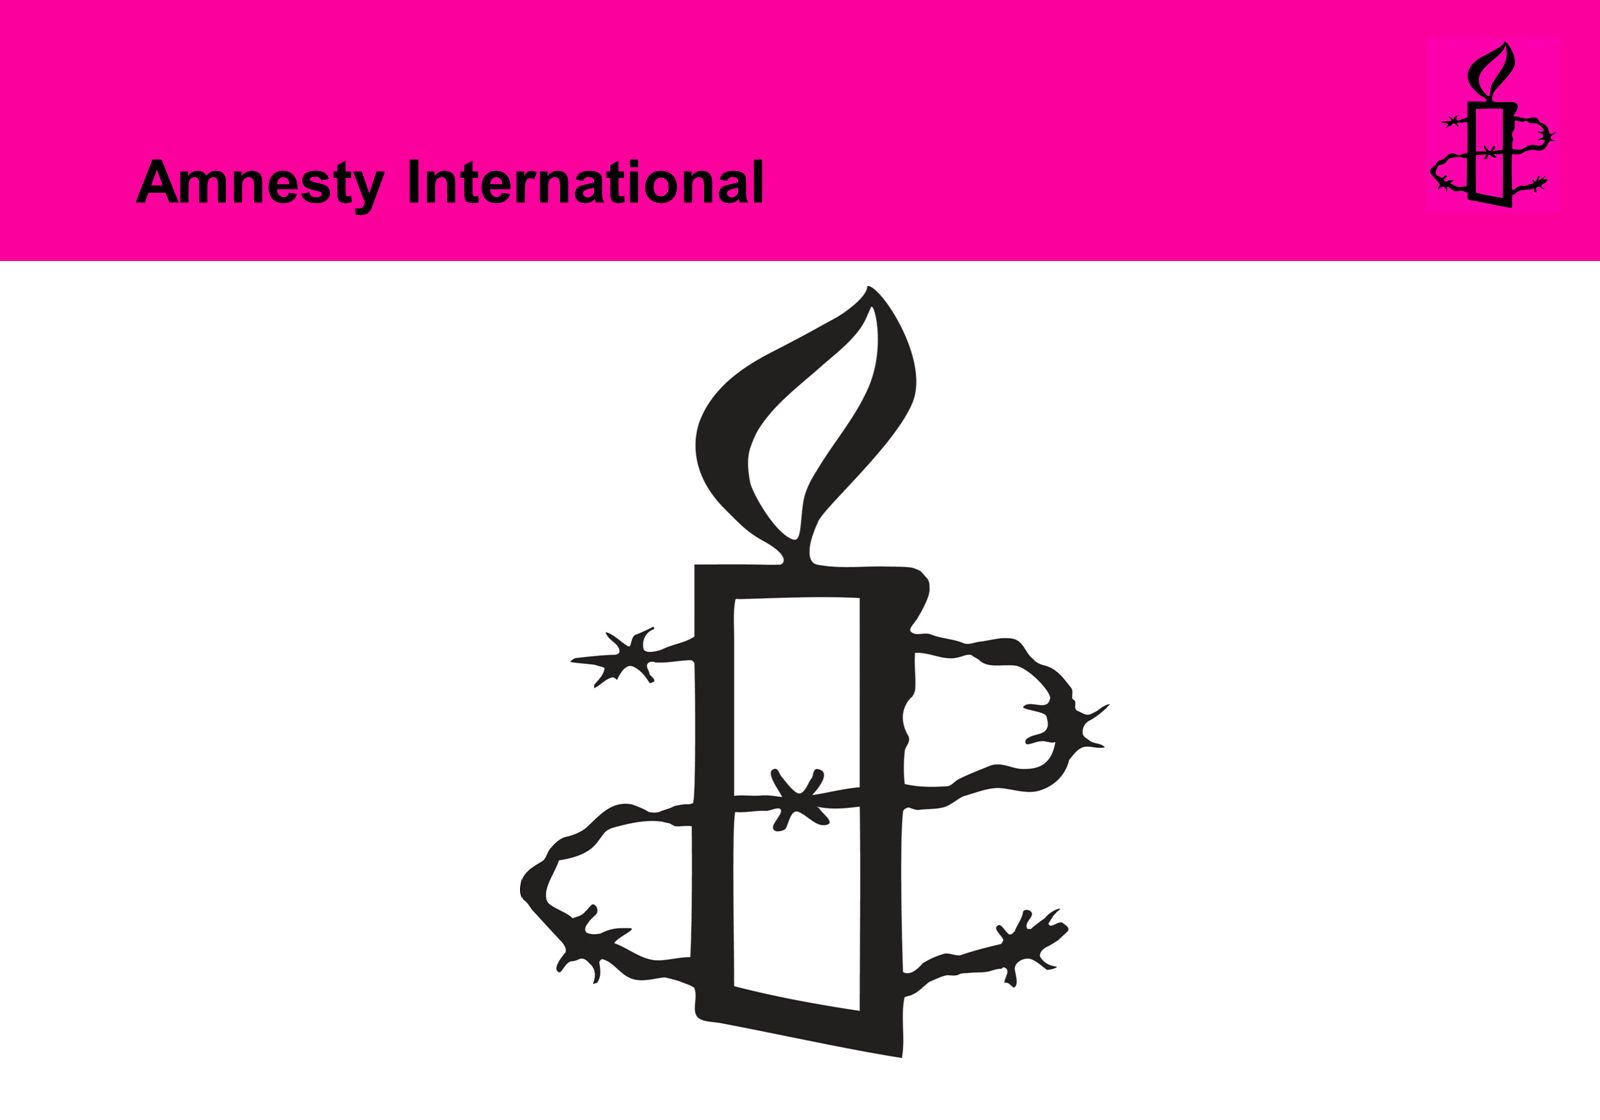 An annual campaign Once a year, between 1st November and 31st January, Amnesty International UK asks supporters to send cards with messages of HOPE and SUPPORT to people all over the world who have suffered HUMAN RIGHTS abuses.